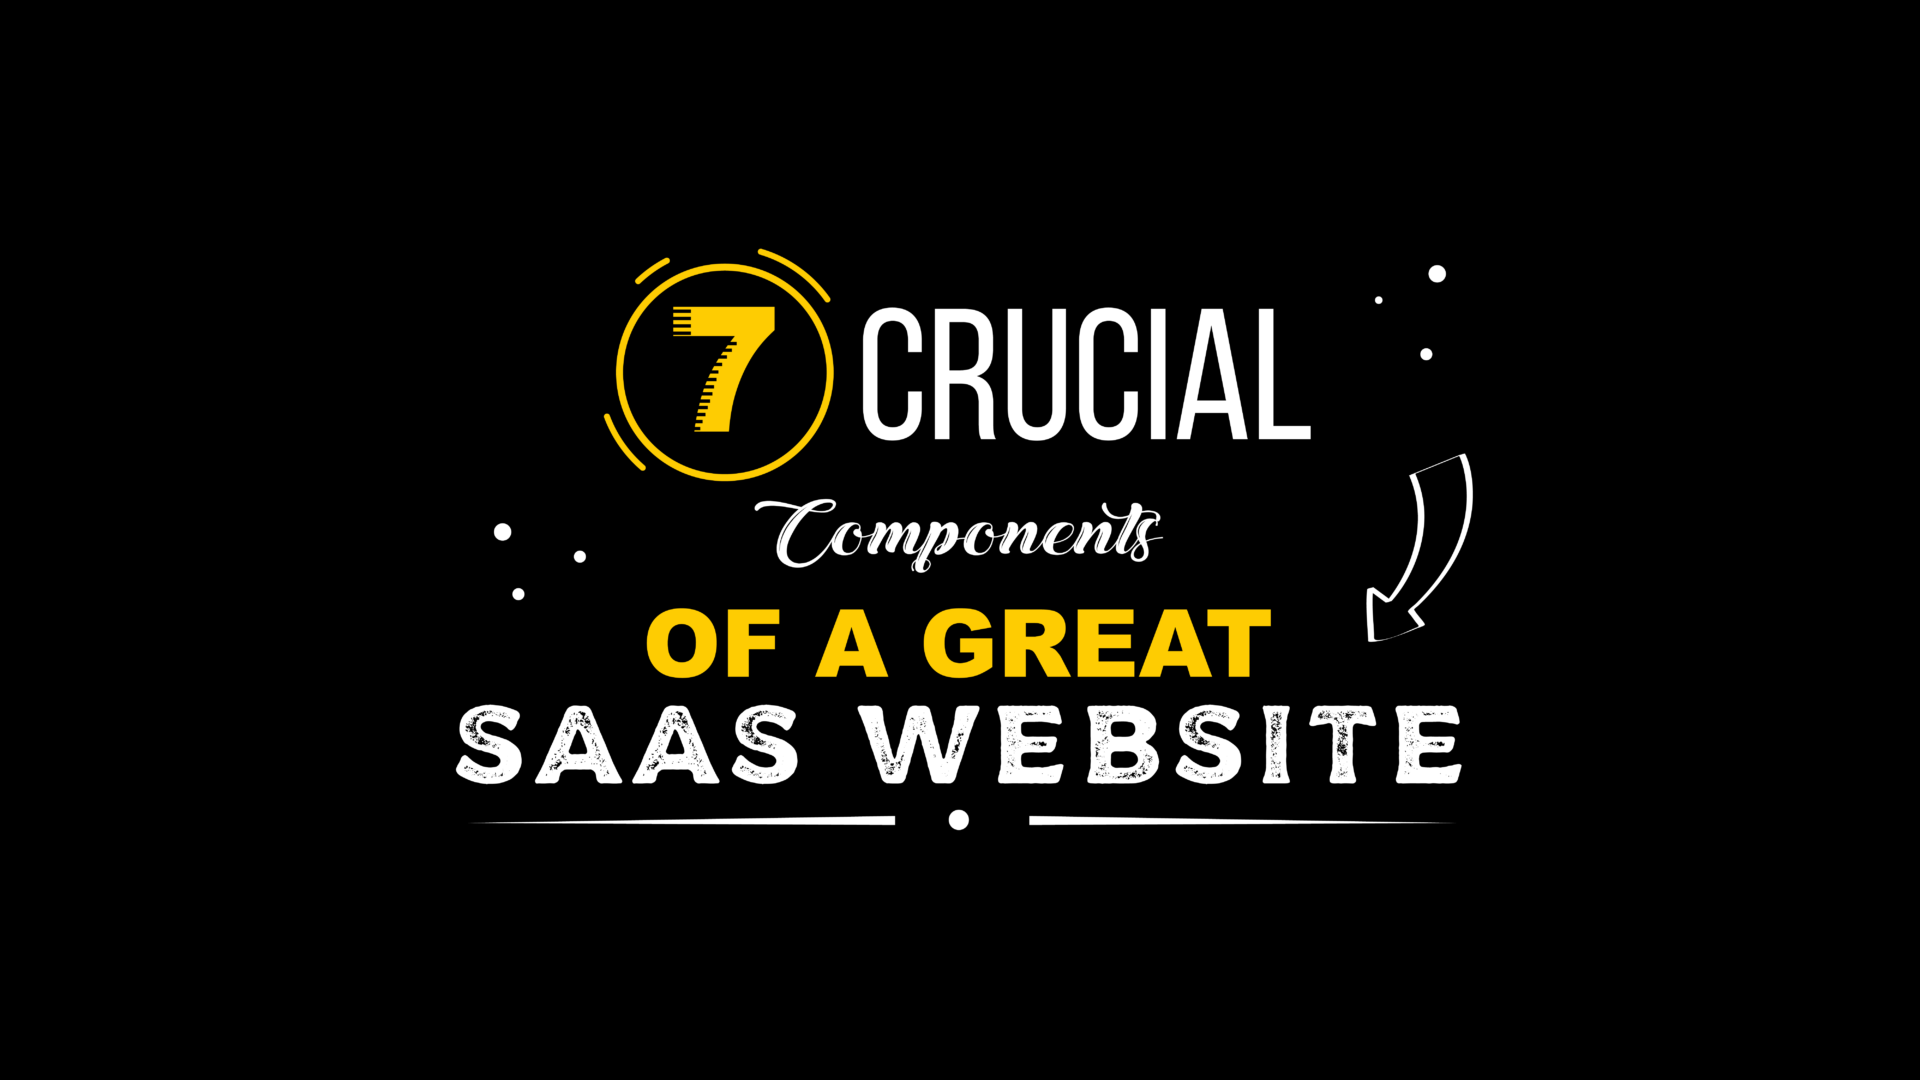 7 Crucial Components of a Great SaaS Website